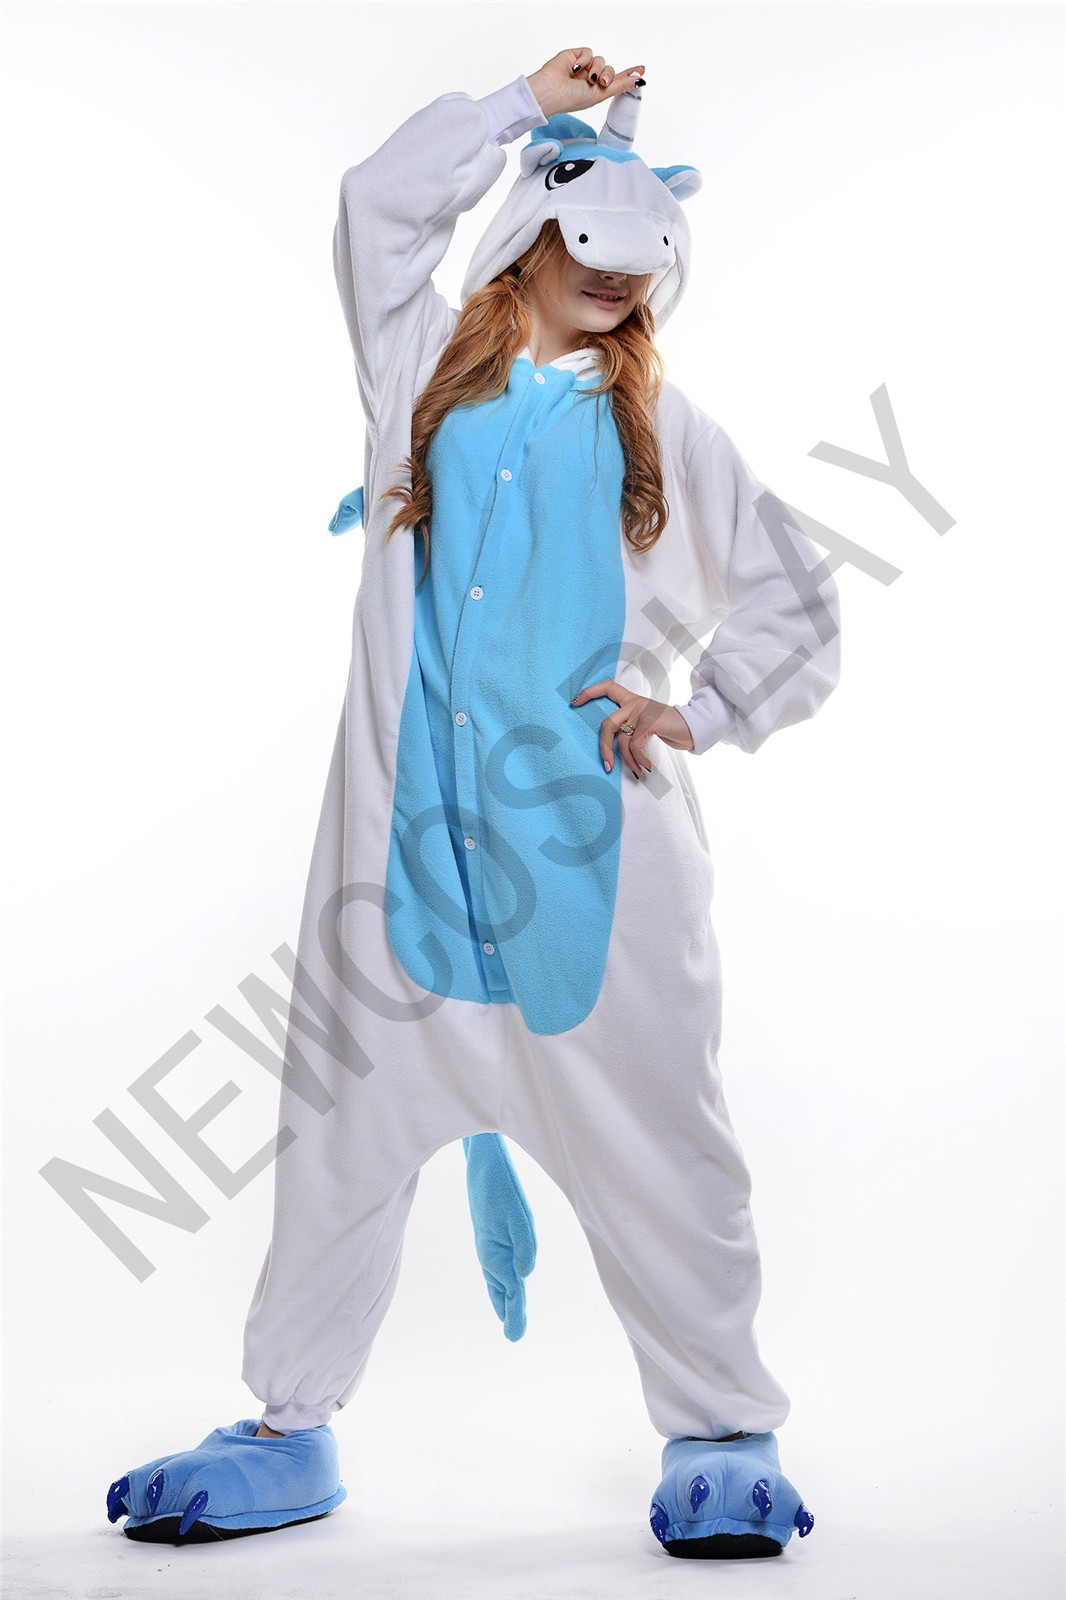 Blue Unicorn onesie by NEWCOSPLAY ONESIE